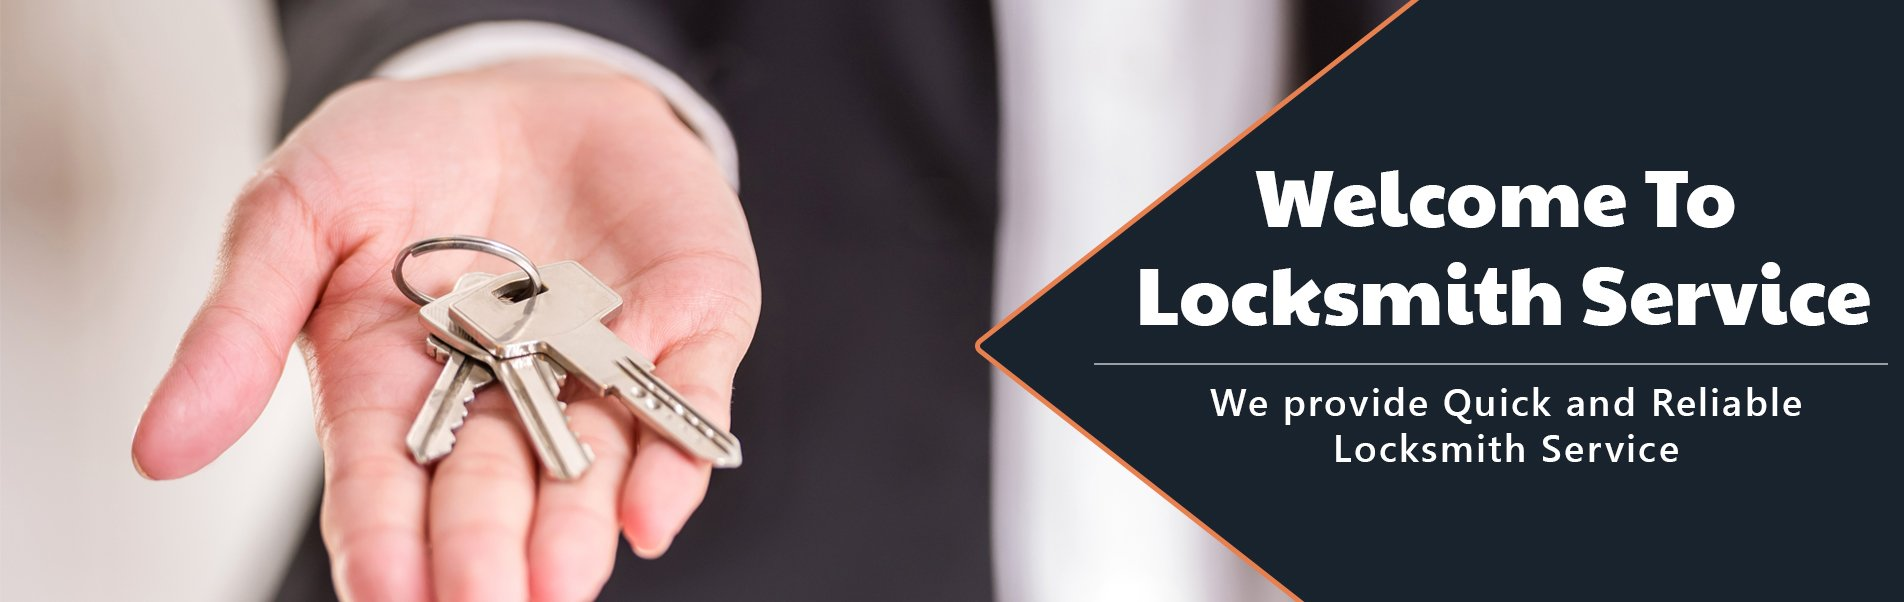 Cincinnati Emergency Locksmith, Cincinnati, OH 513-714-5187